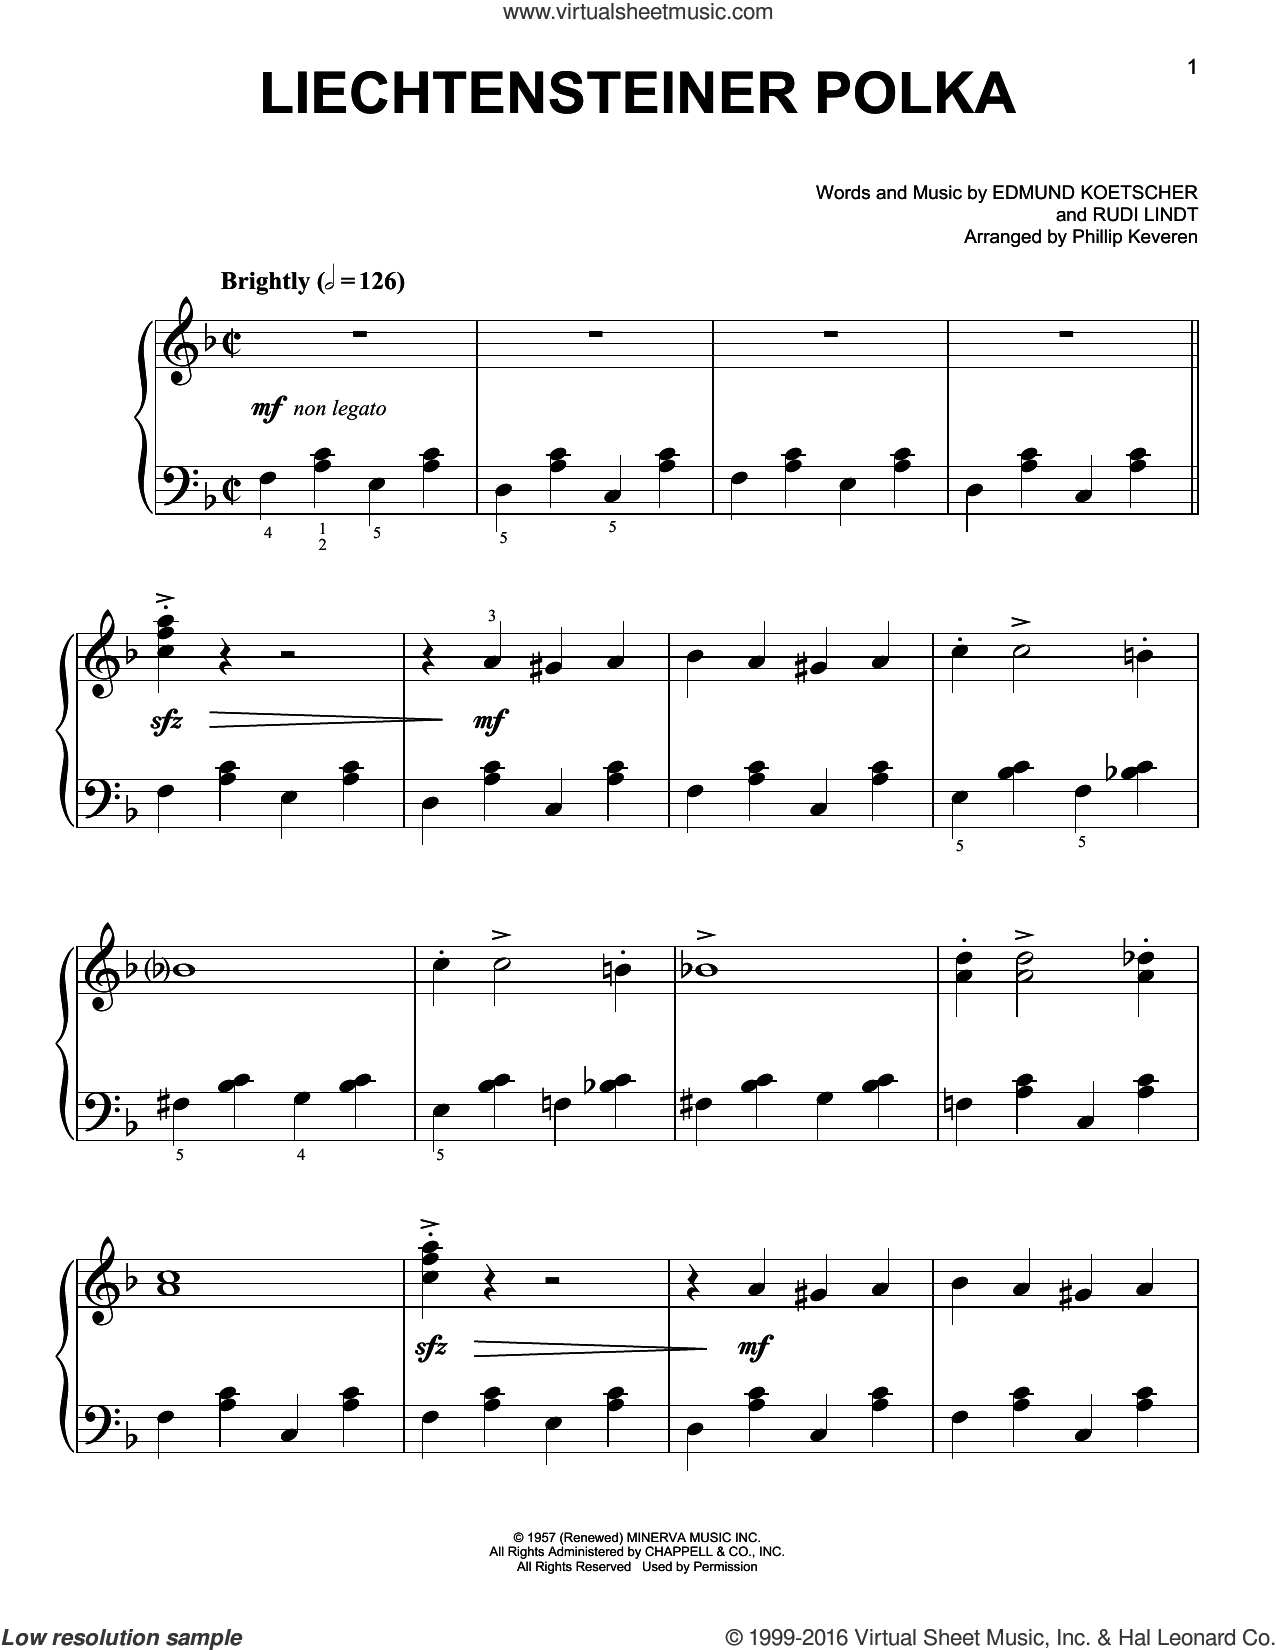 Liechtensteiner Polka sheet music for piano solo by Edmund Koetscher, Phillip Keveren, Miscellaneous and Rudi Lindt, easy skill level